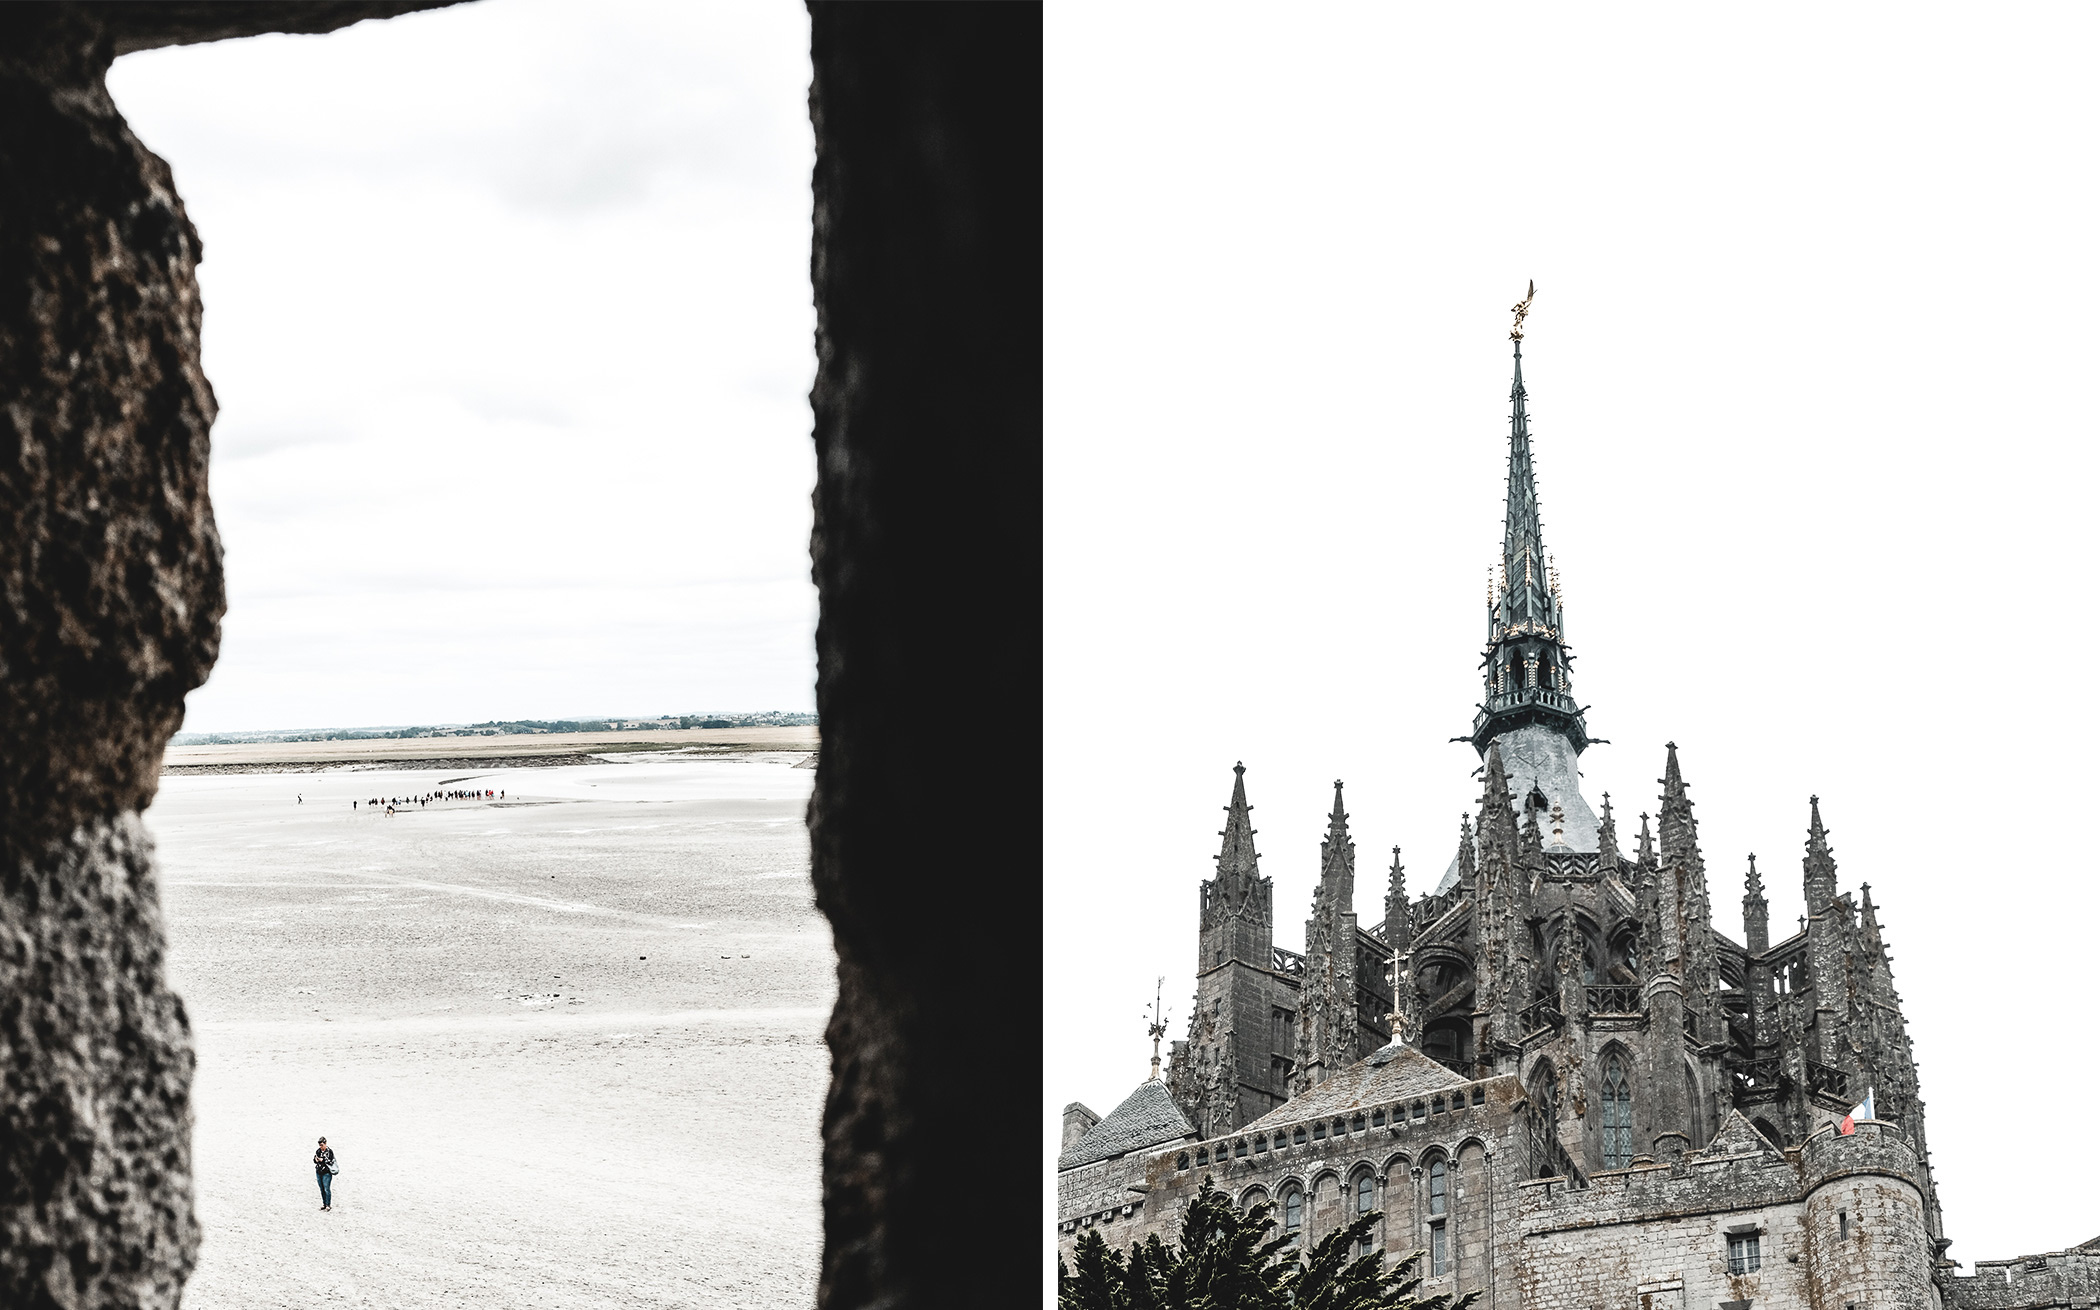 Mont saint Michel, Beautiful place in Normandy, French Casttle. Travel Blog post about a charming little trip